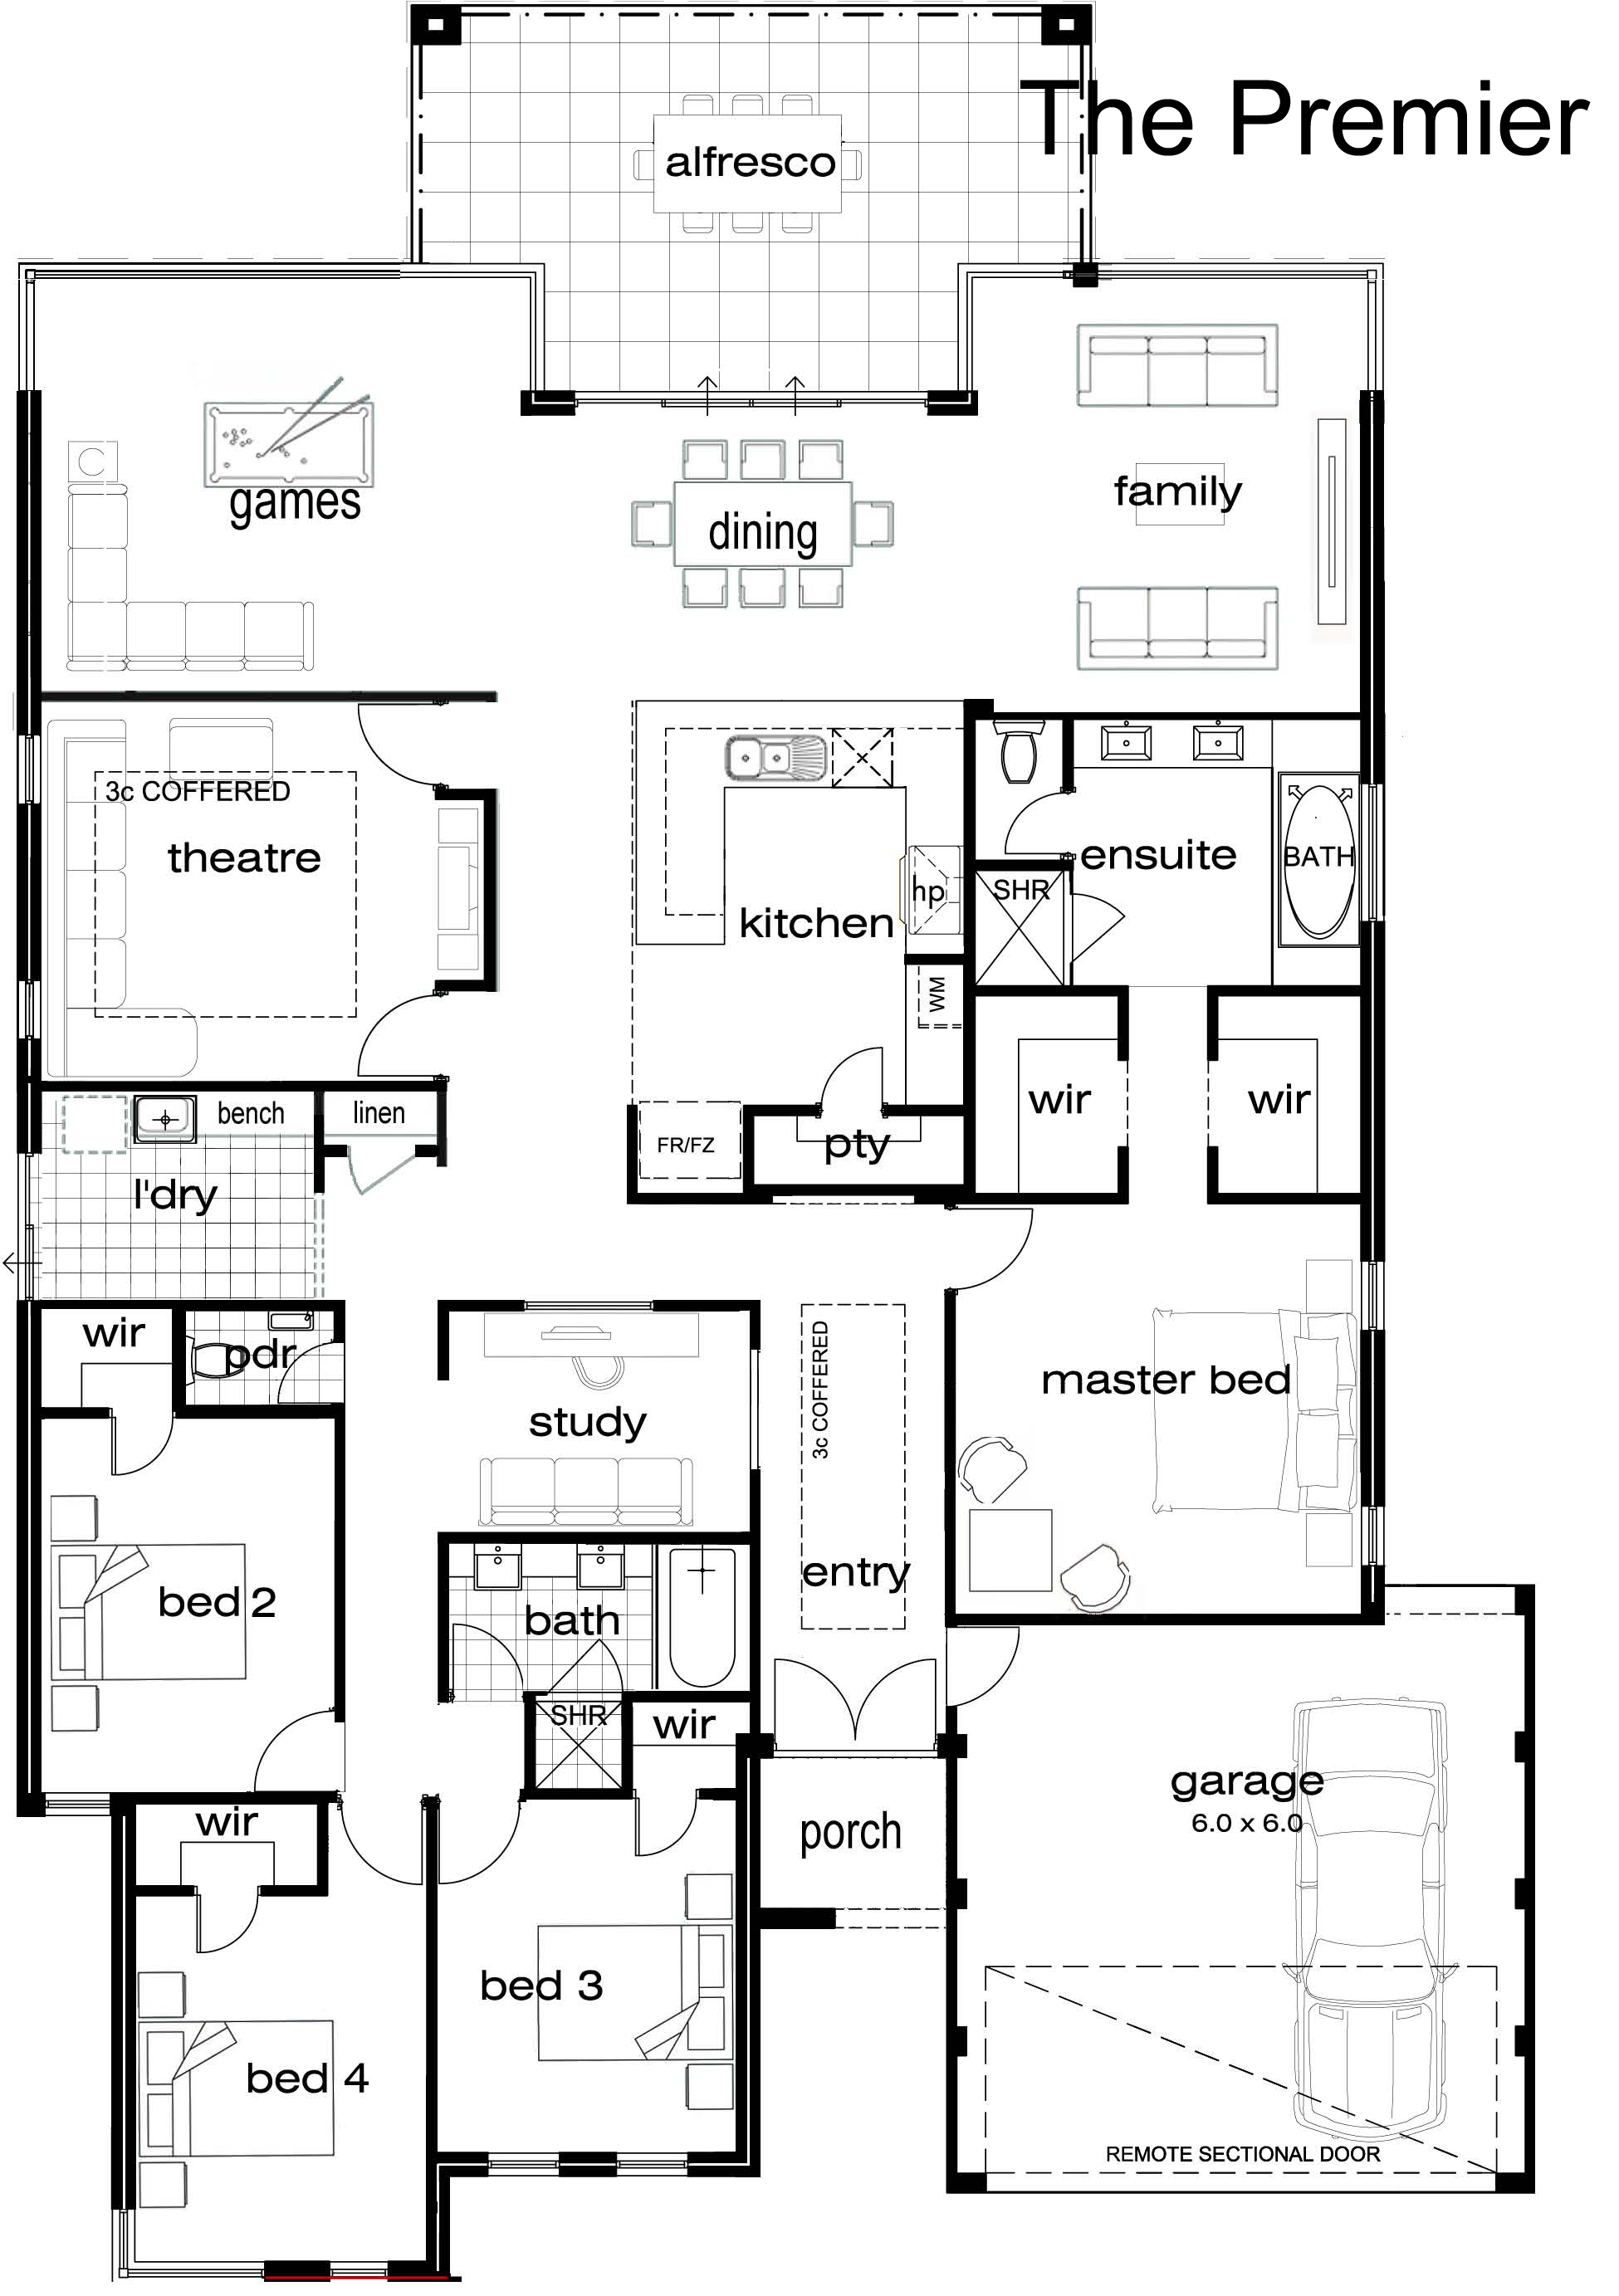 House 4 5 Bath Plans One Story Bedrooms